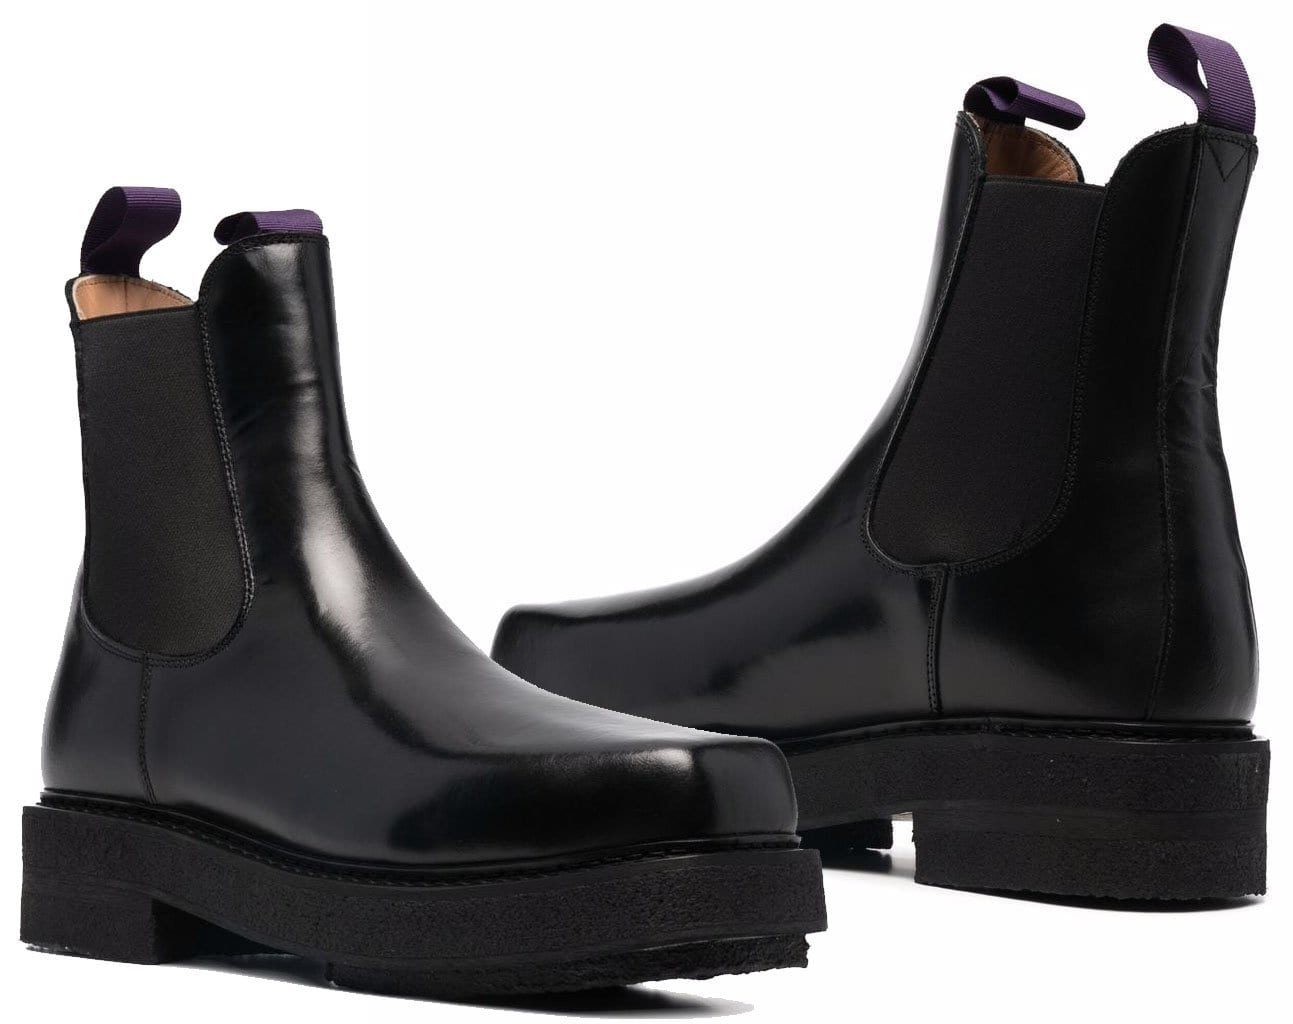 Eytys' Ortega boot features chunky platform soles that add a contemporary twist to the classic Chelsea silhouette